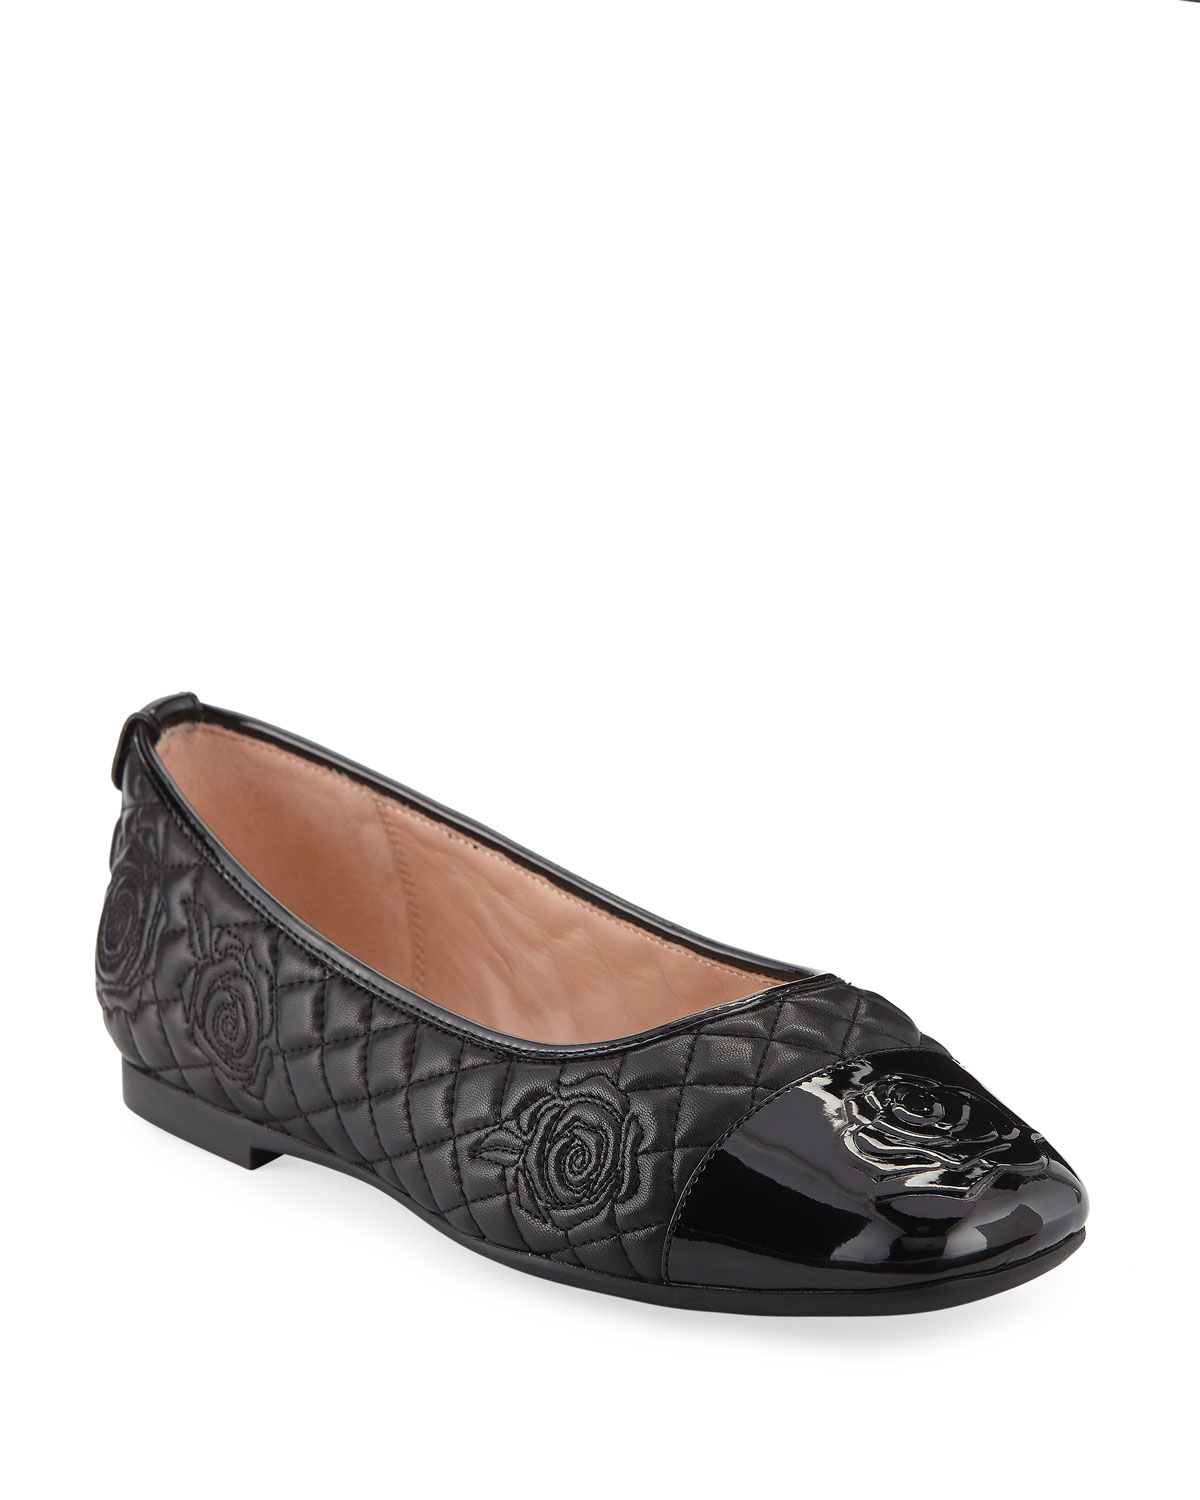 e8ca692b8bc Taryn Rose Reese Rose-Quilted Leather Ballet Flats